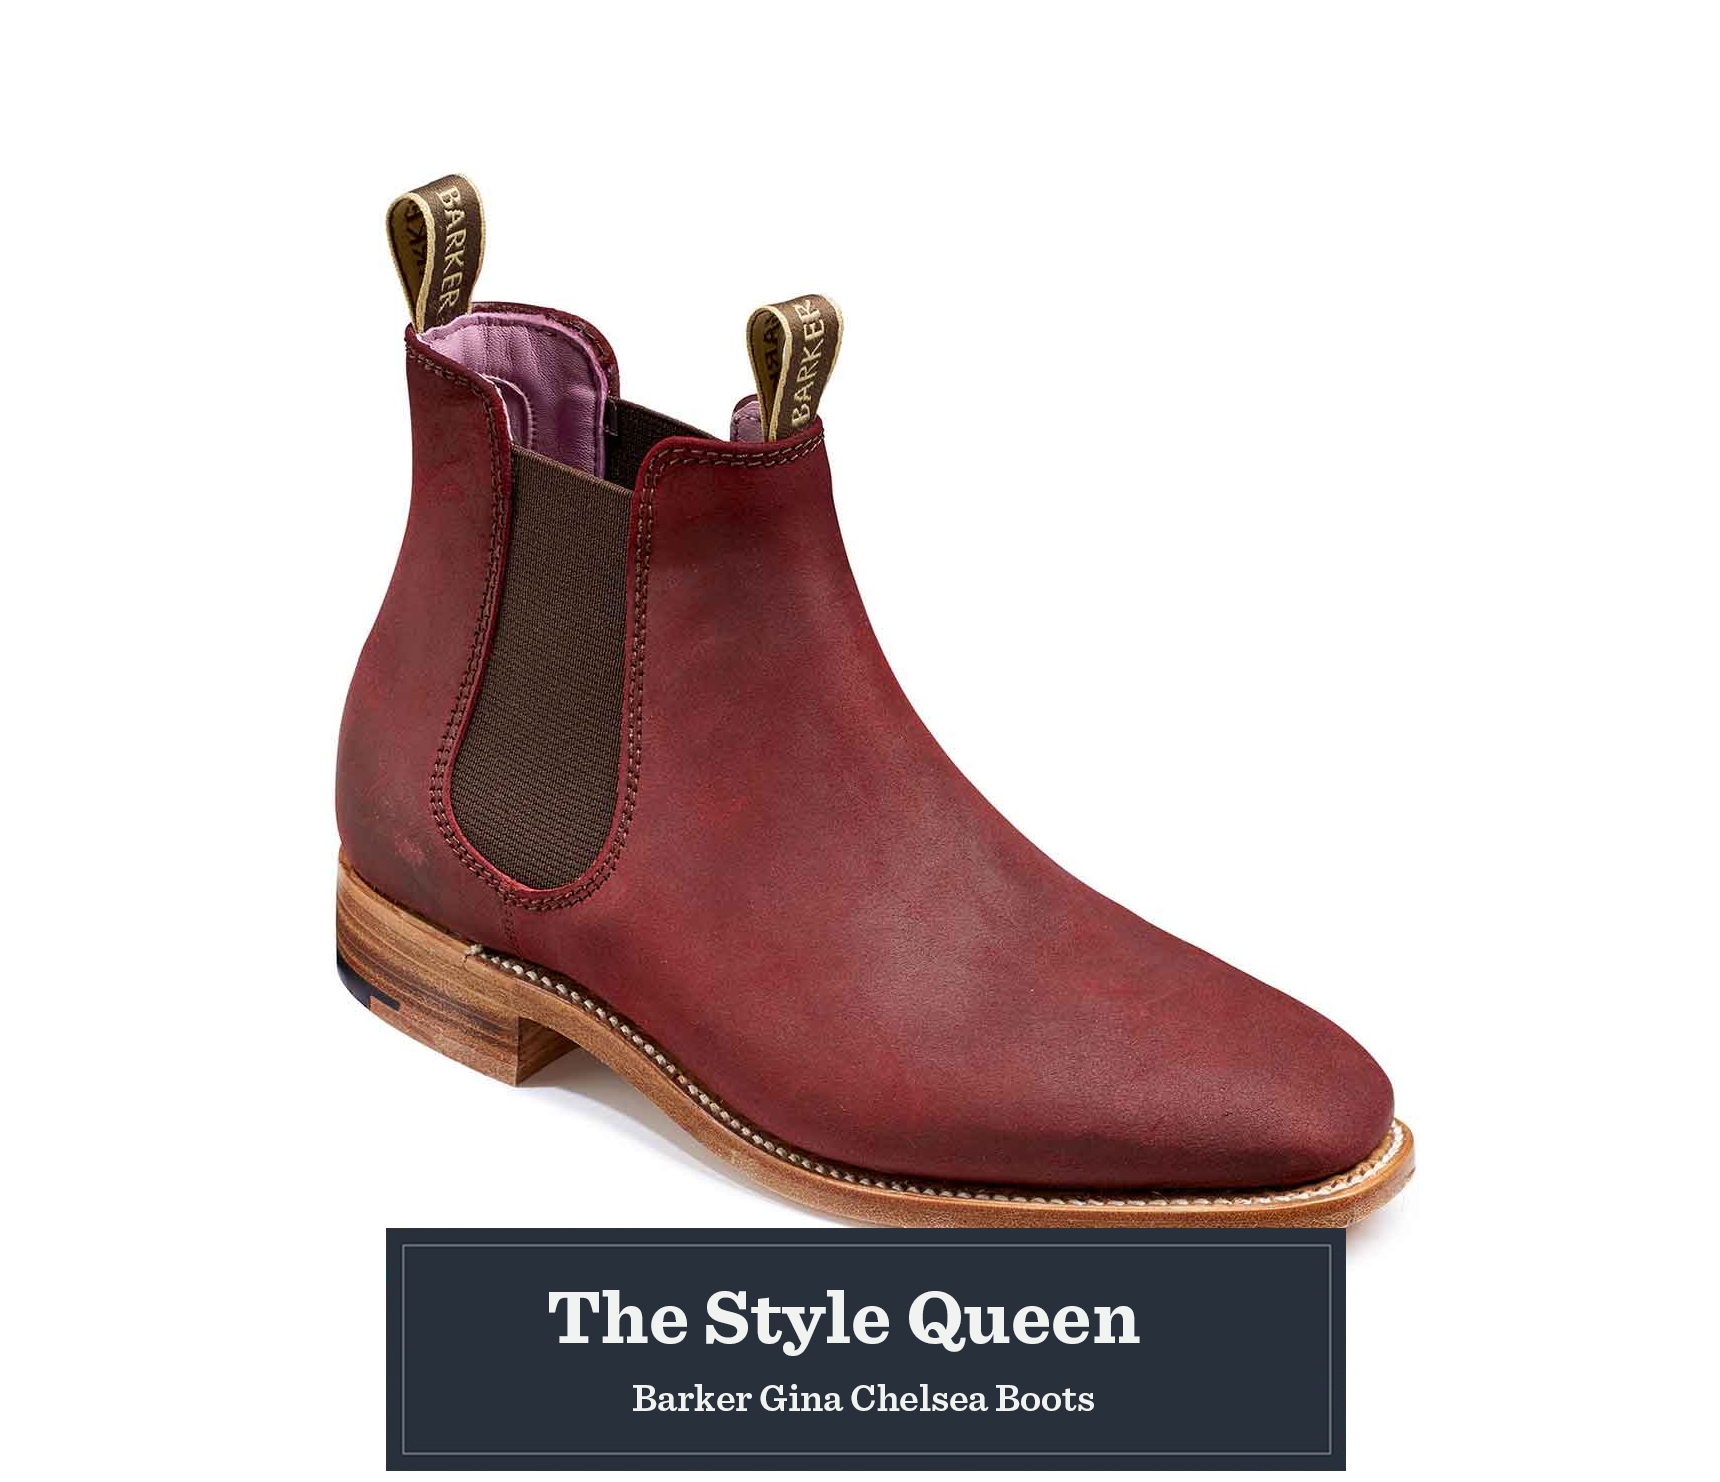 Barker Gina Chelsea Boots